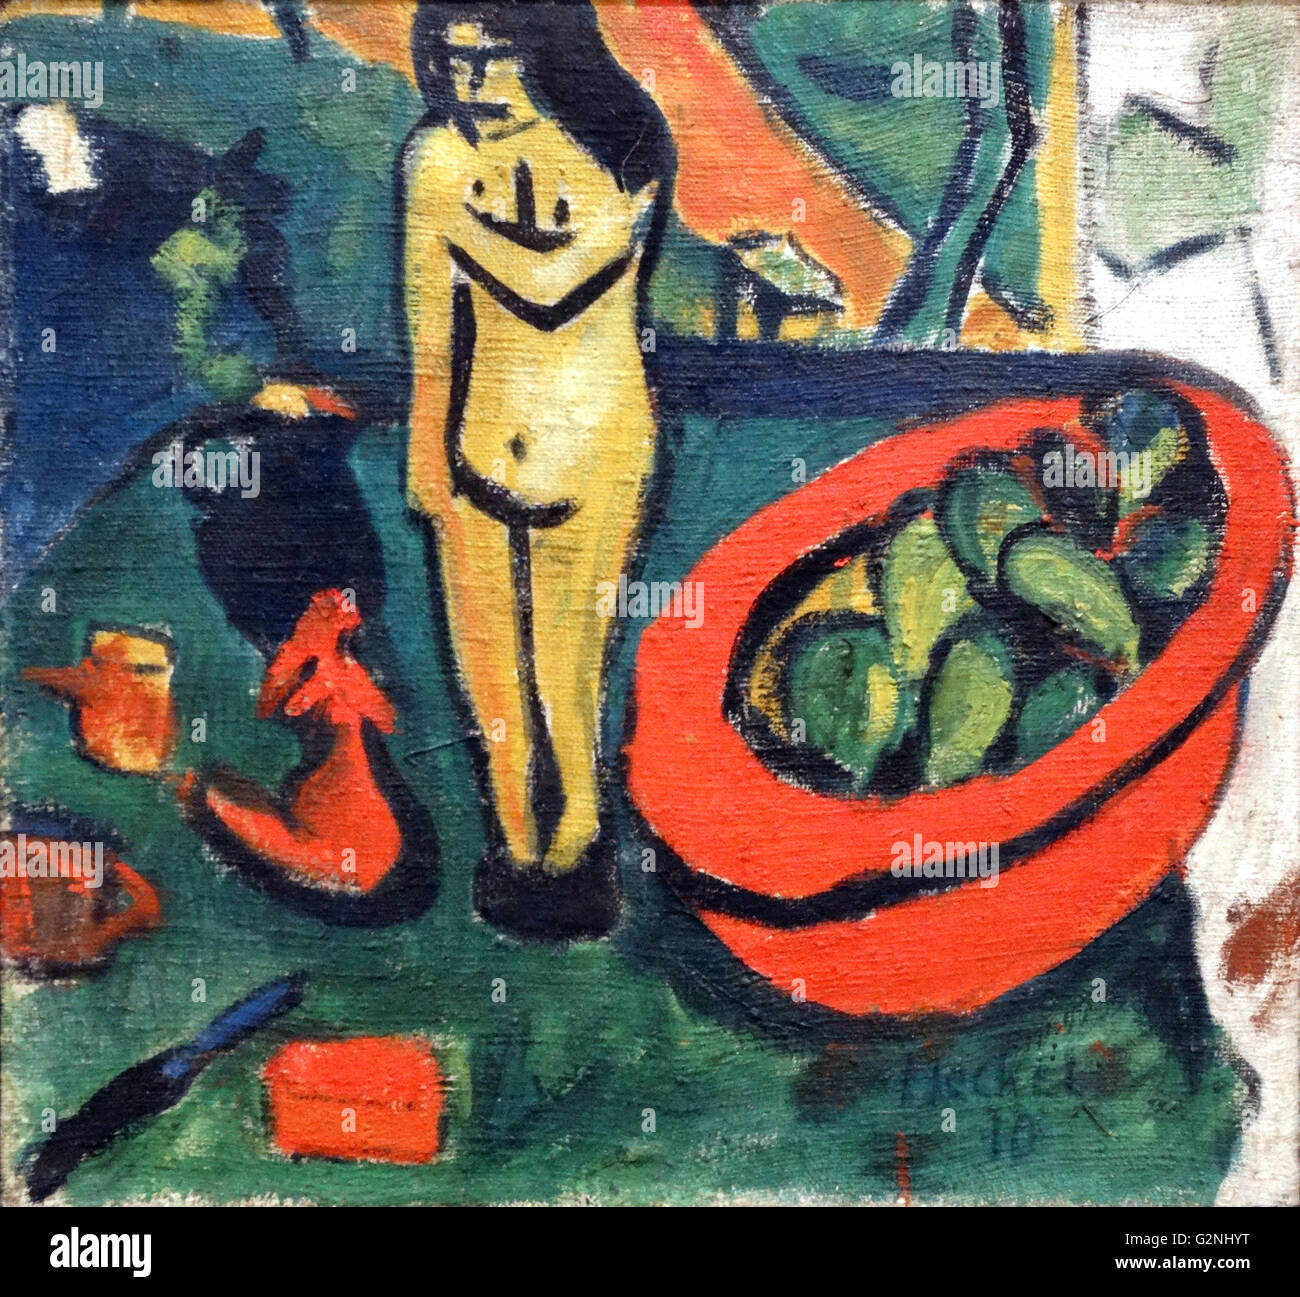 Dancing woman by Ernst Ludwig Kirchner - Stock Image